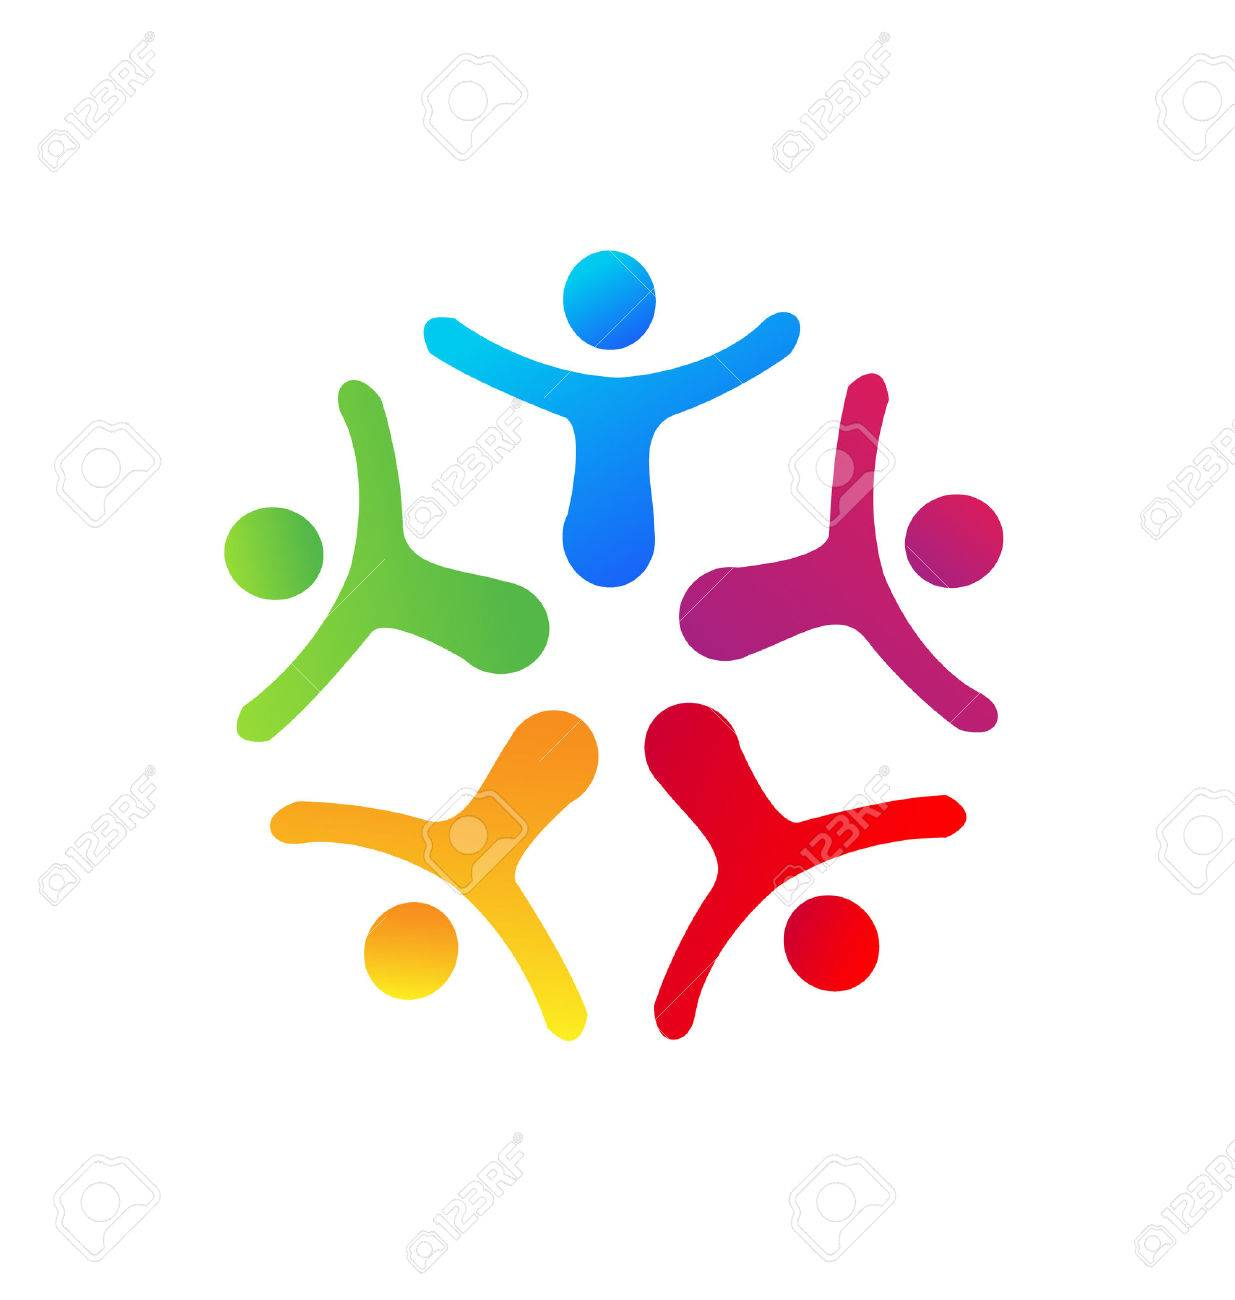 People union icon vector Stock Vector - 23200487